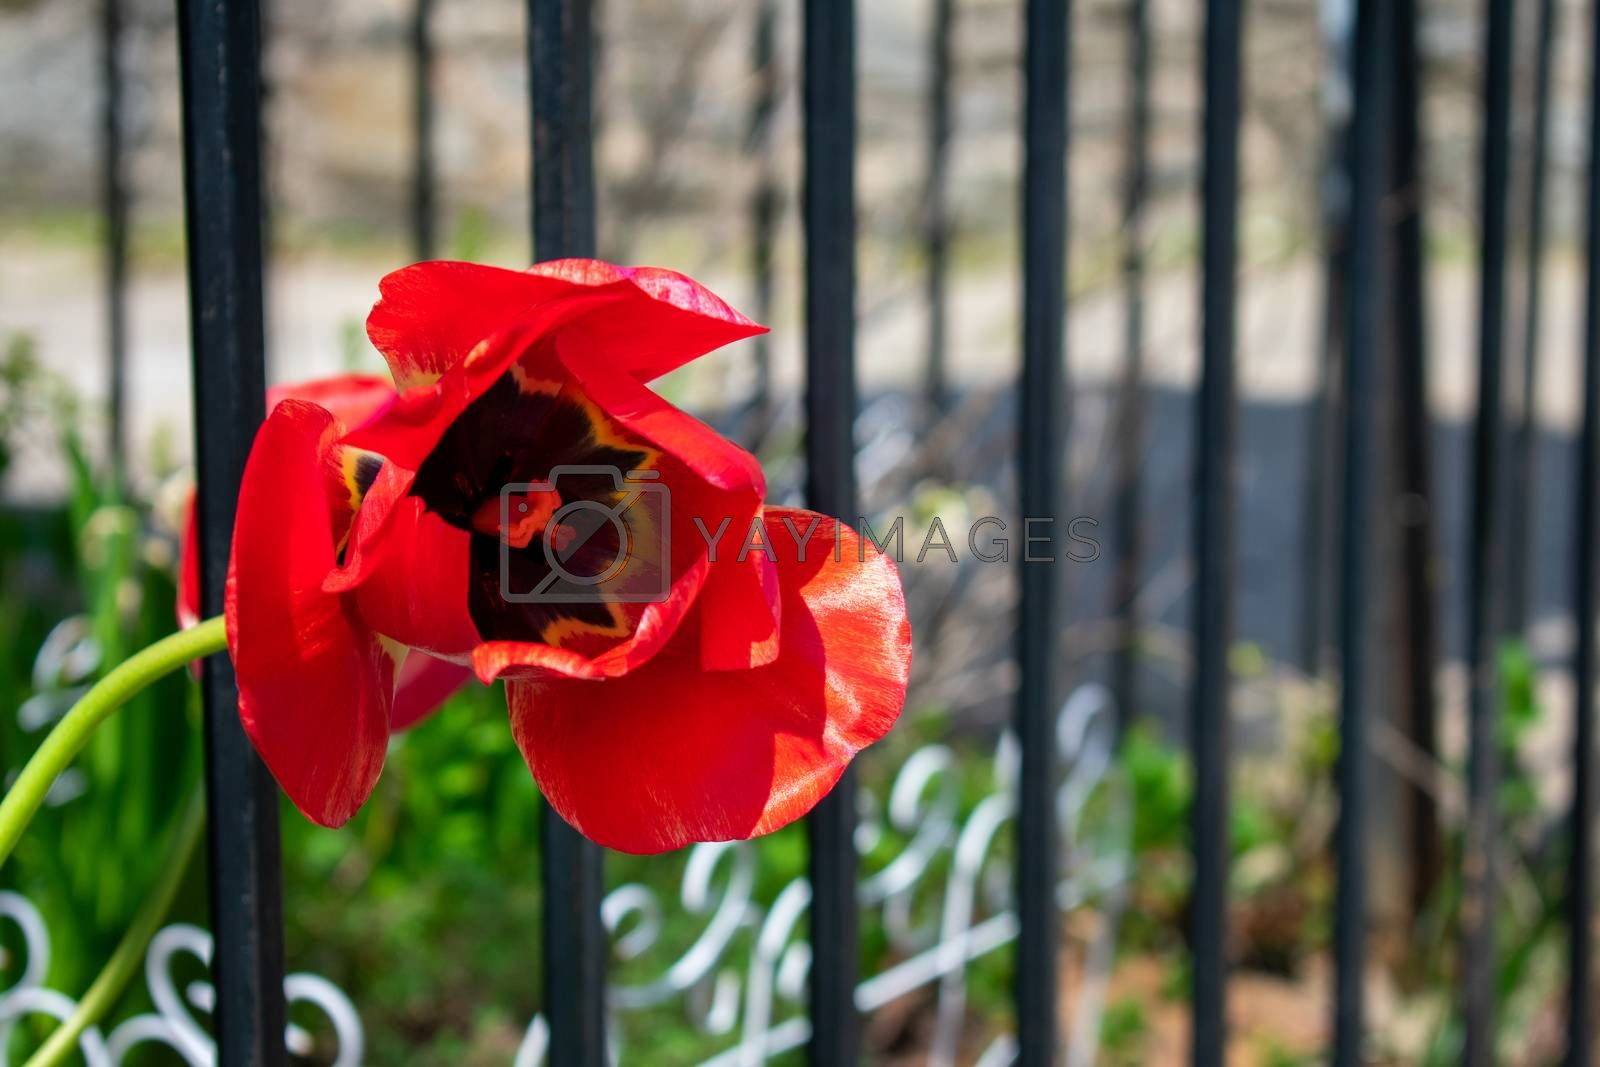 A Single Red Tulip Next to a Fence and Suburban Sidewalk